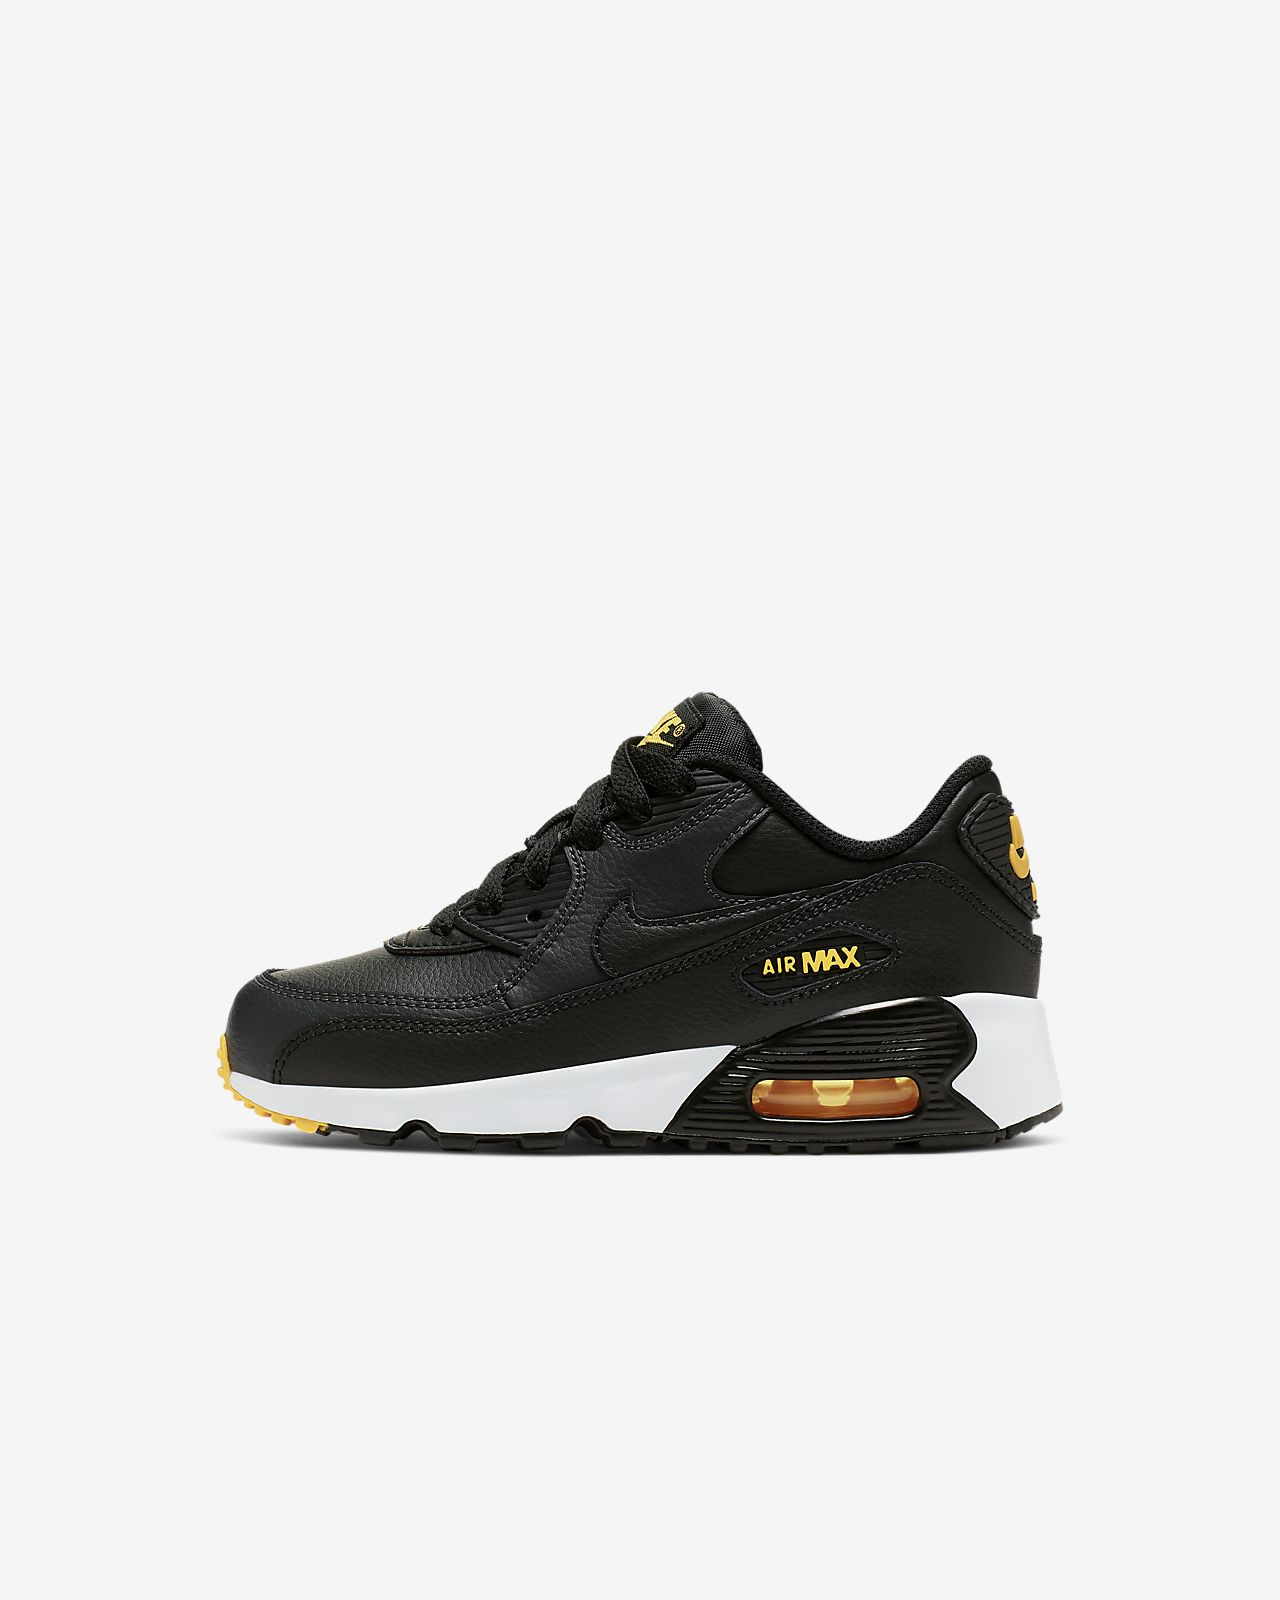 12166ce744 Nike Air Max 90 Leather Little Kids' Shoe. Nike.com